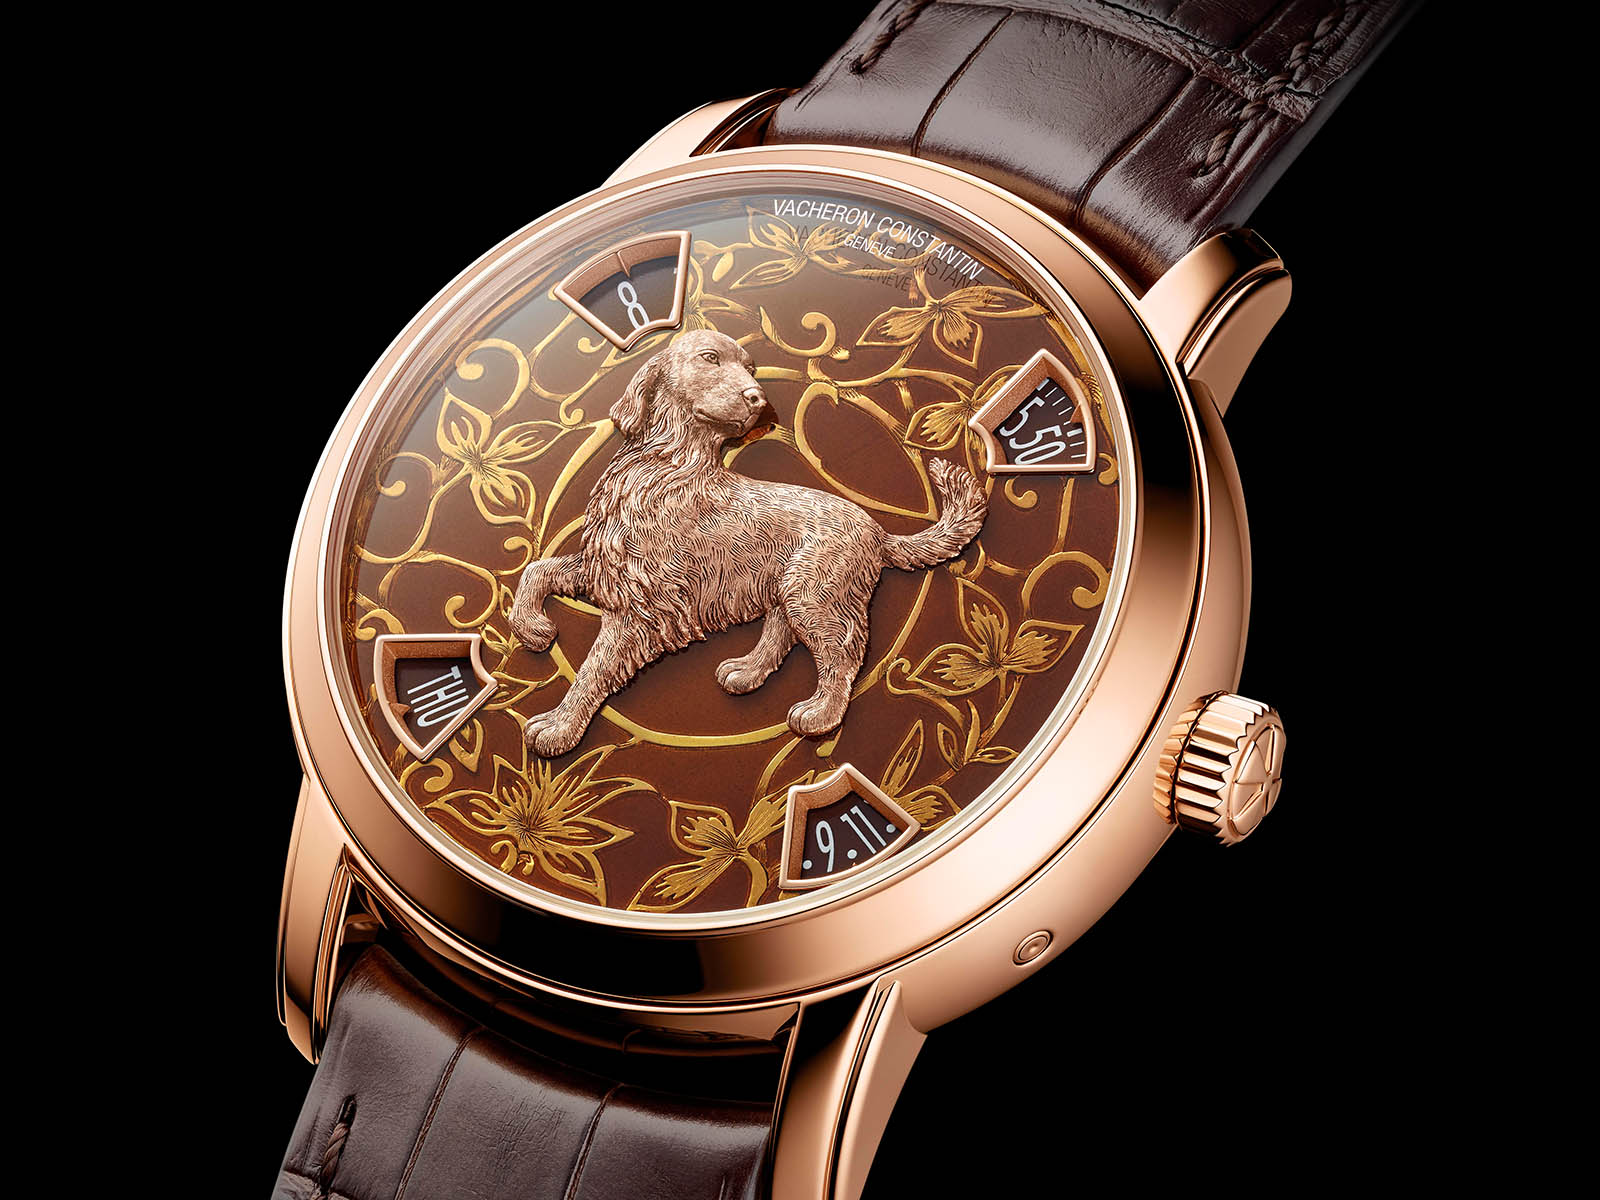 Vacheron-Constantin-The-Legend-of-the-Chinese-Zodiac-Year-of-the-Dog-5.jpg